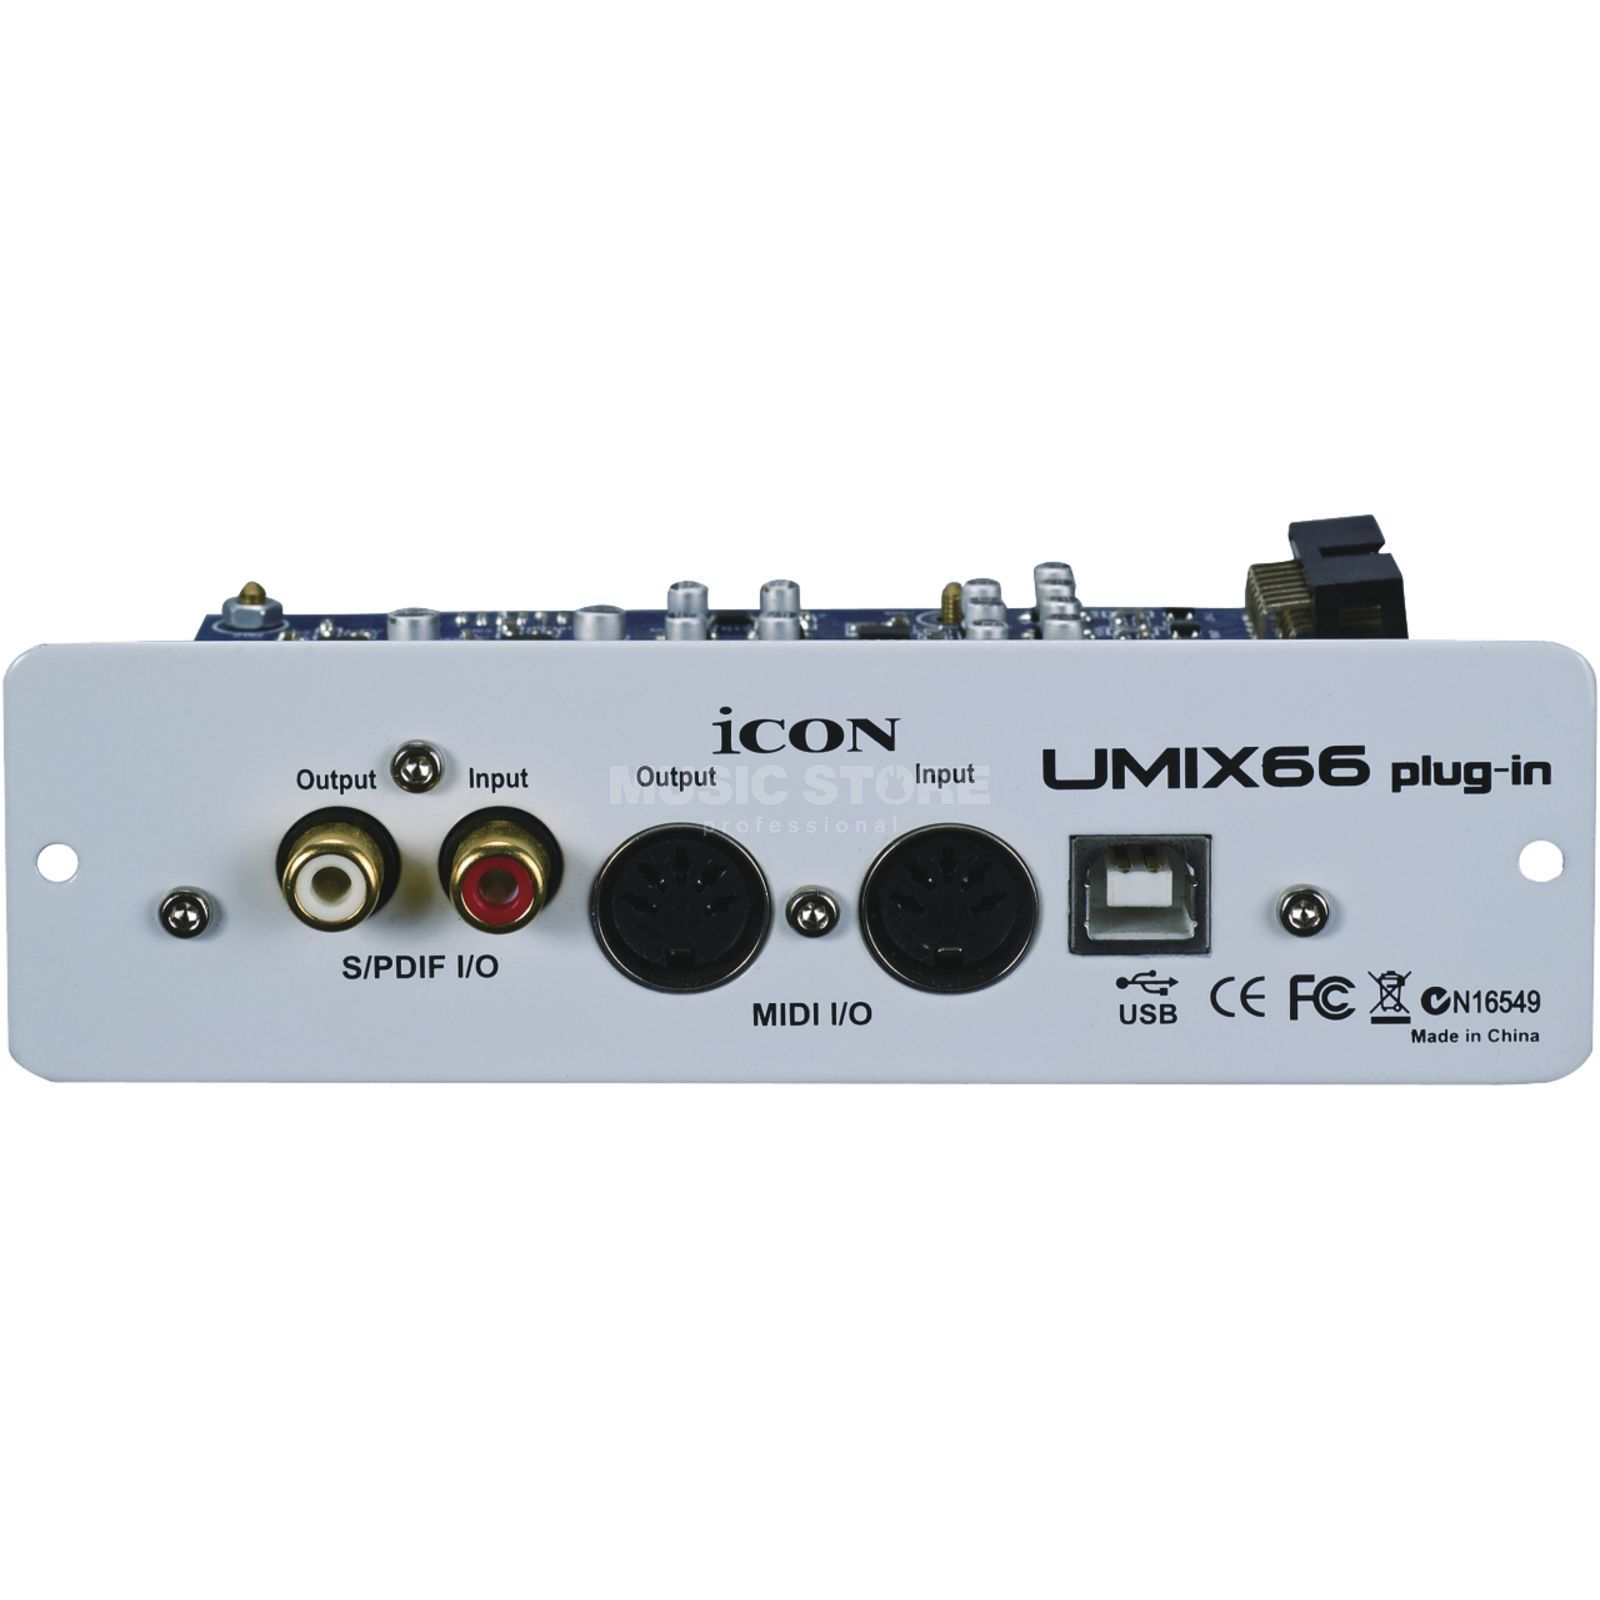 iCON Umix66 USB Expansion Card 6In/6Out + MIDI für Umix Mixer Produktbild